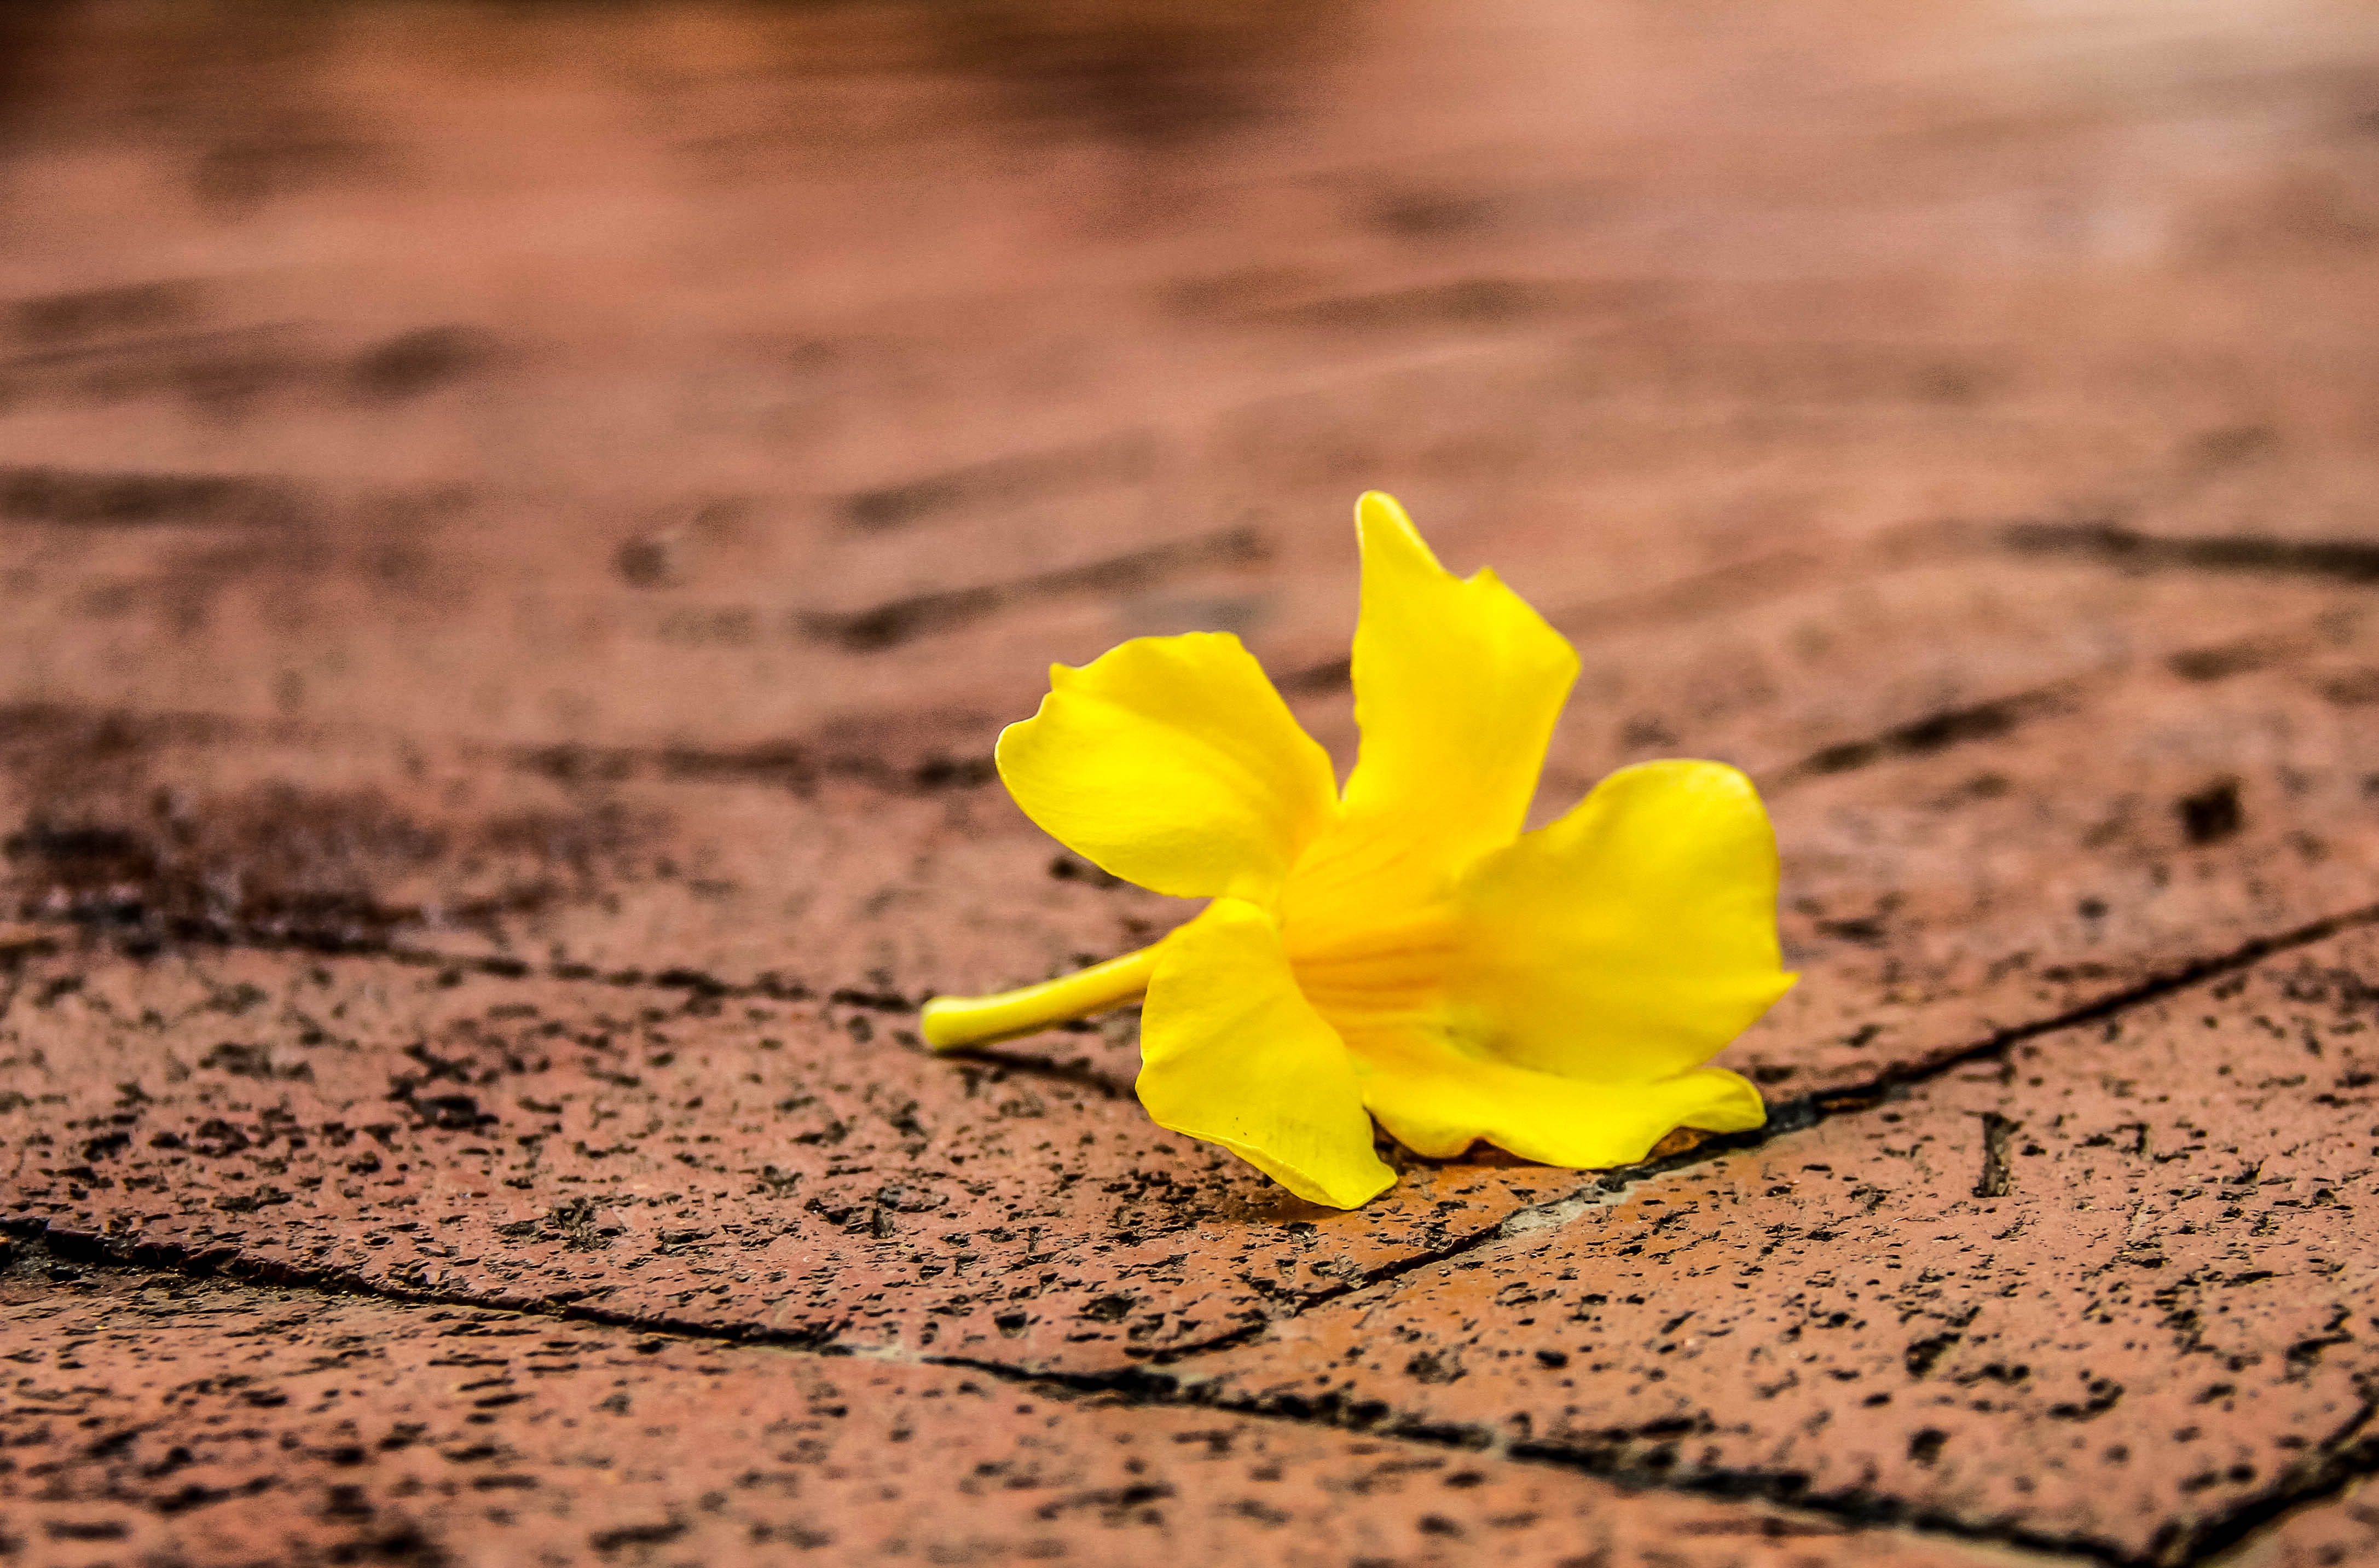 A small yellow flower on rough concrete